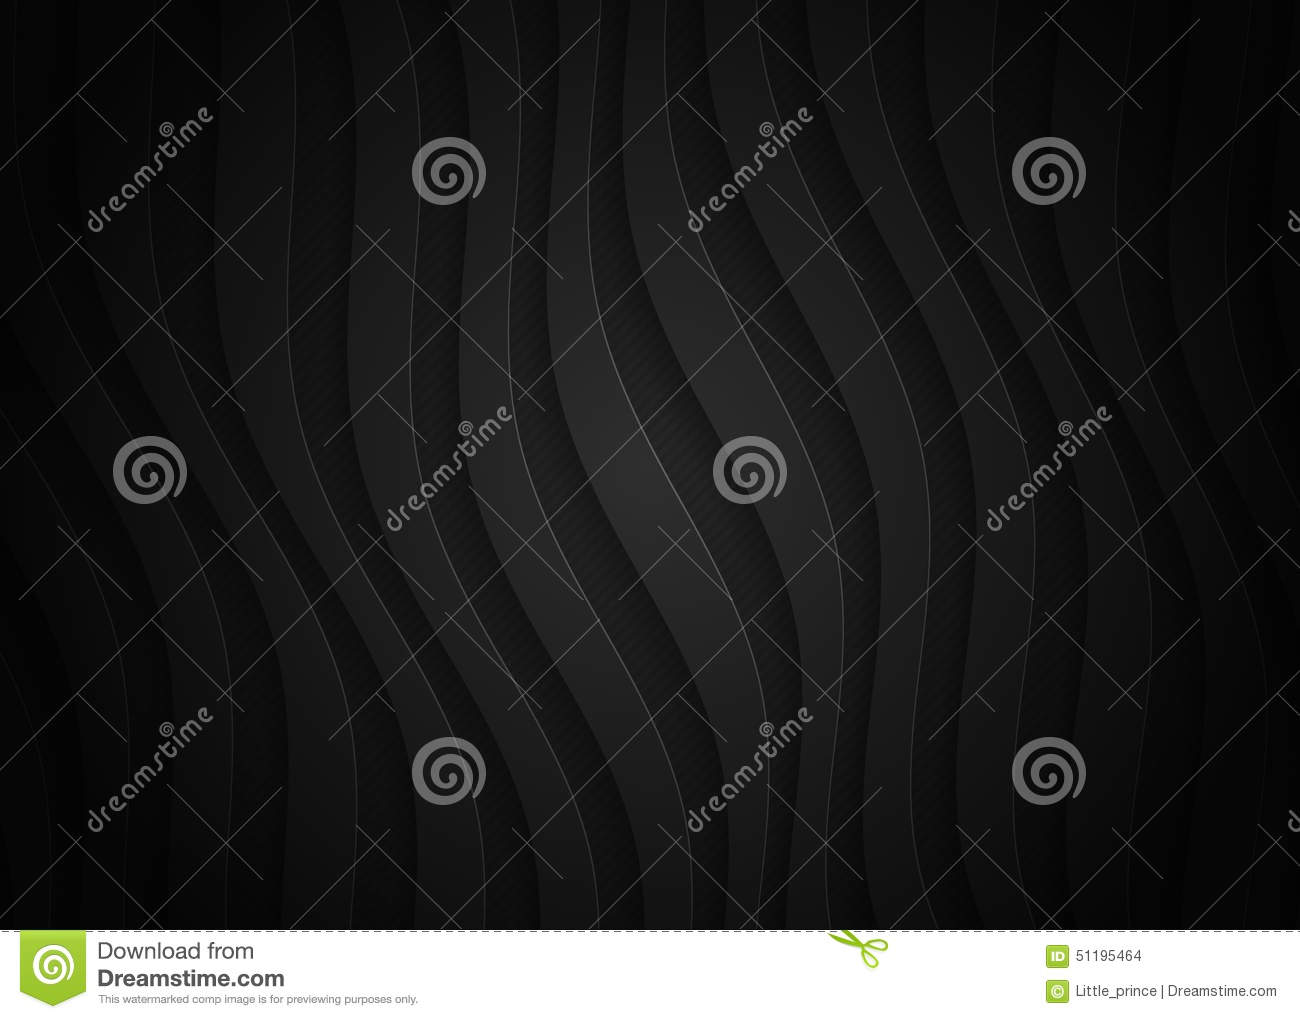 Black paper geometric pattern, abstract background template for website, banner, business card, invitation